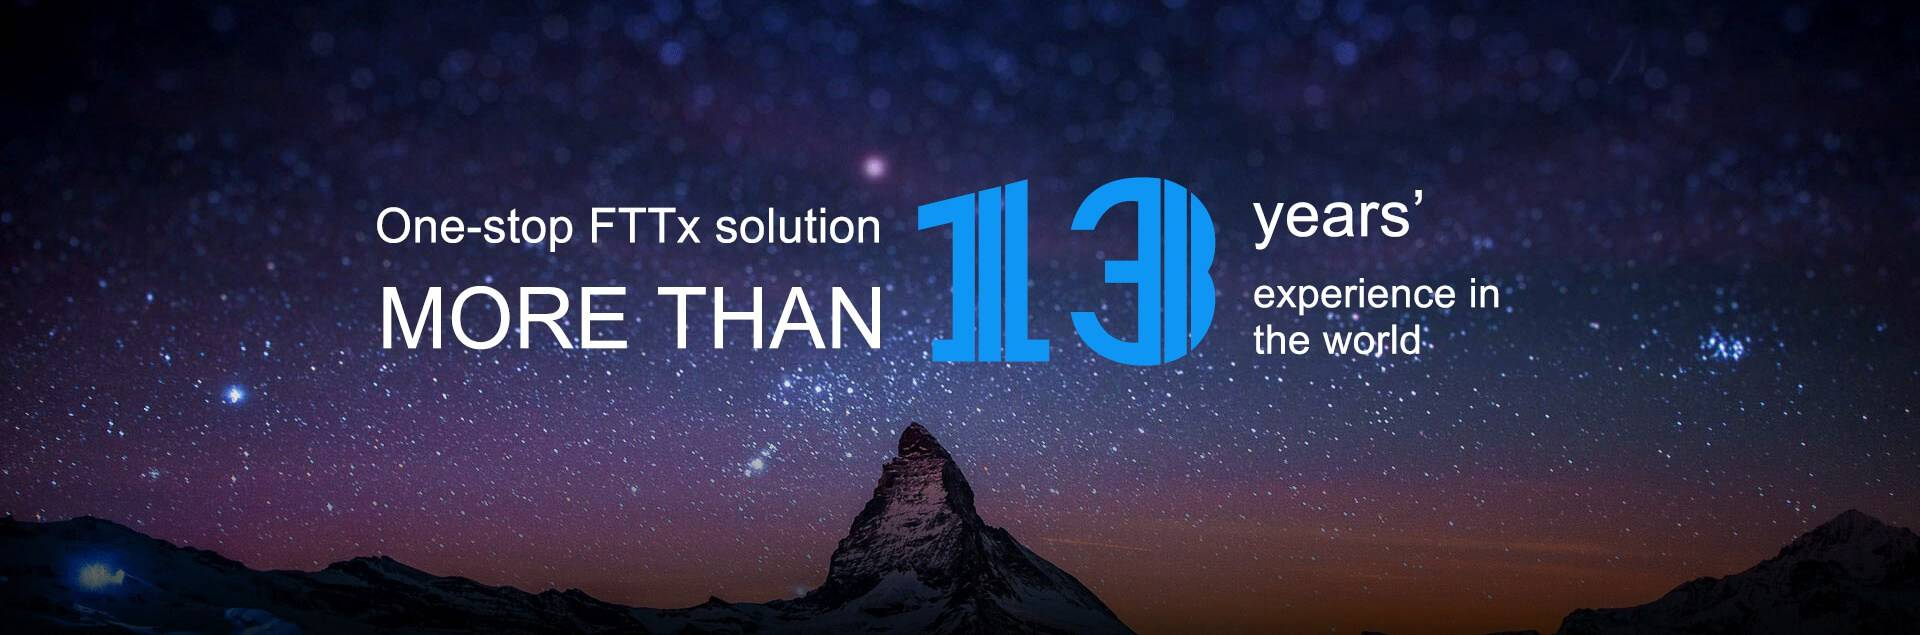 one-stop fttx solution